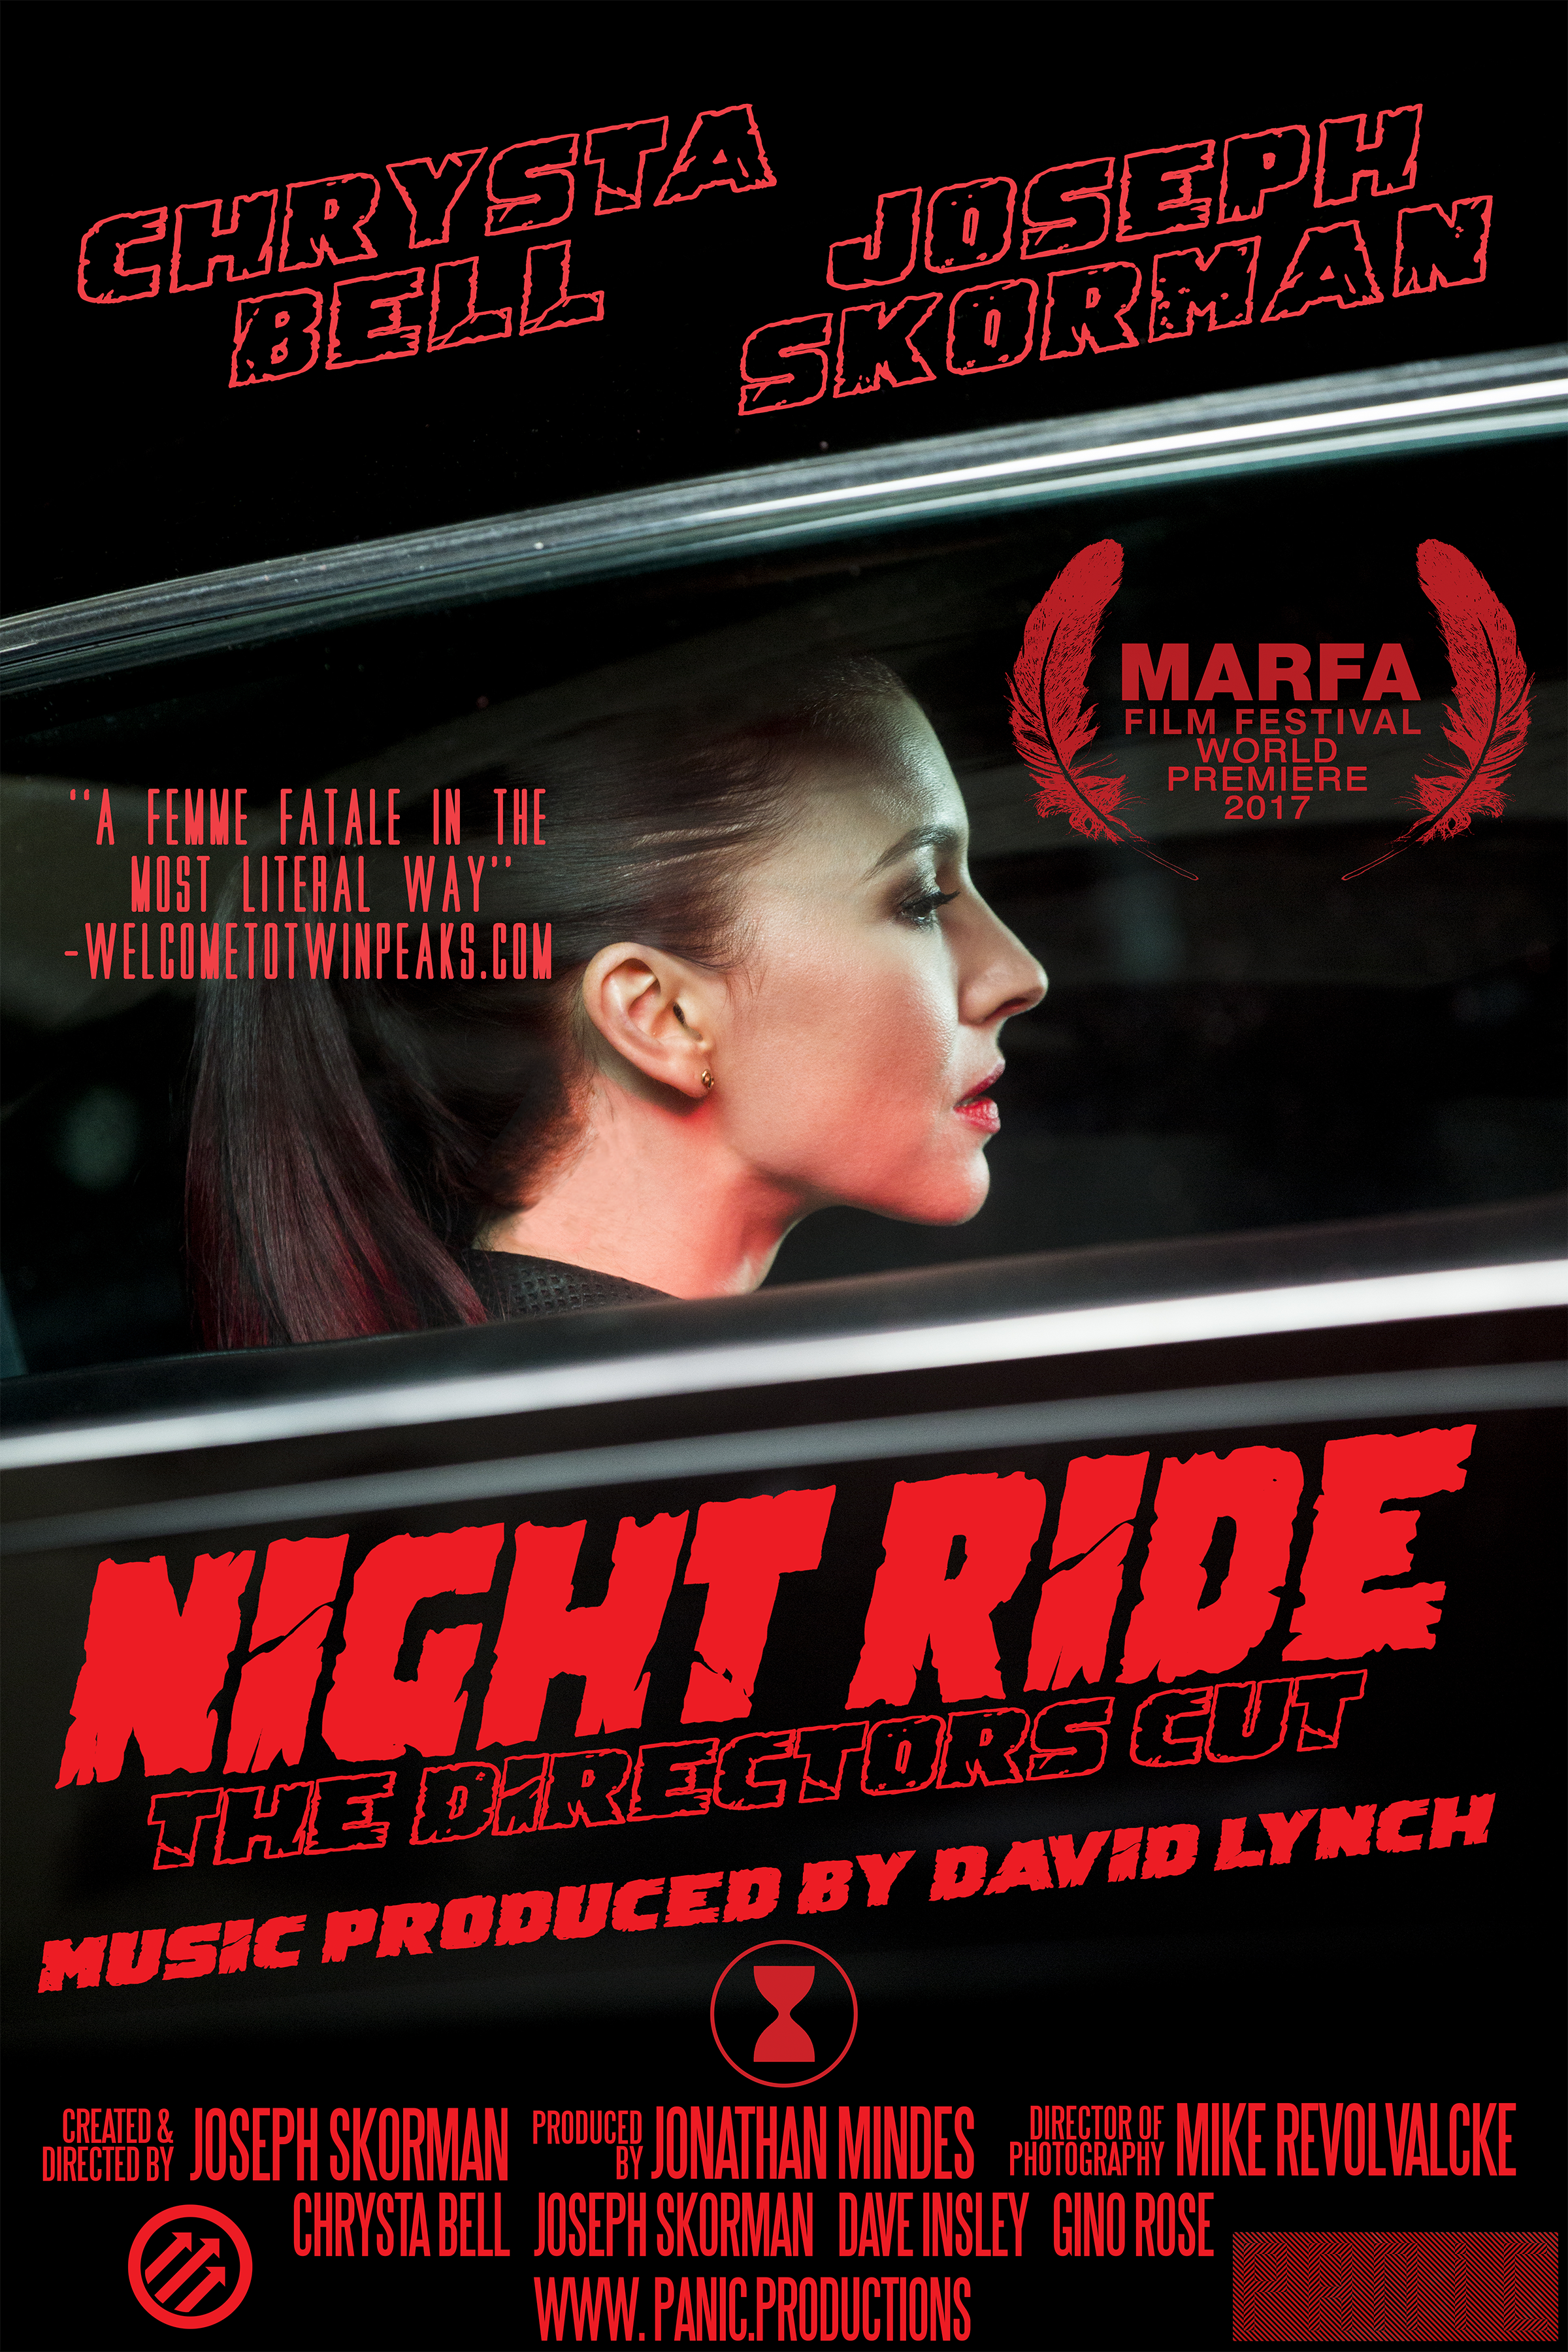 night_ride_the_directors_cut_poster_joseph_skorman_chrysta_bell